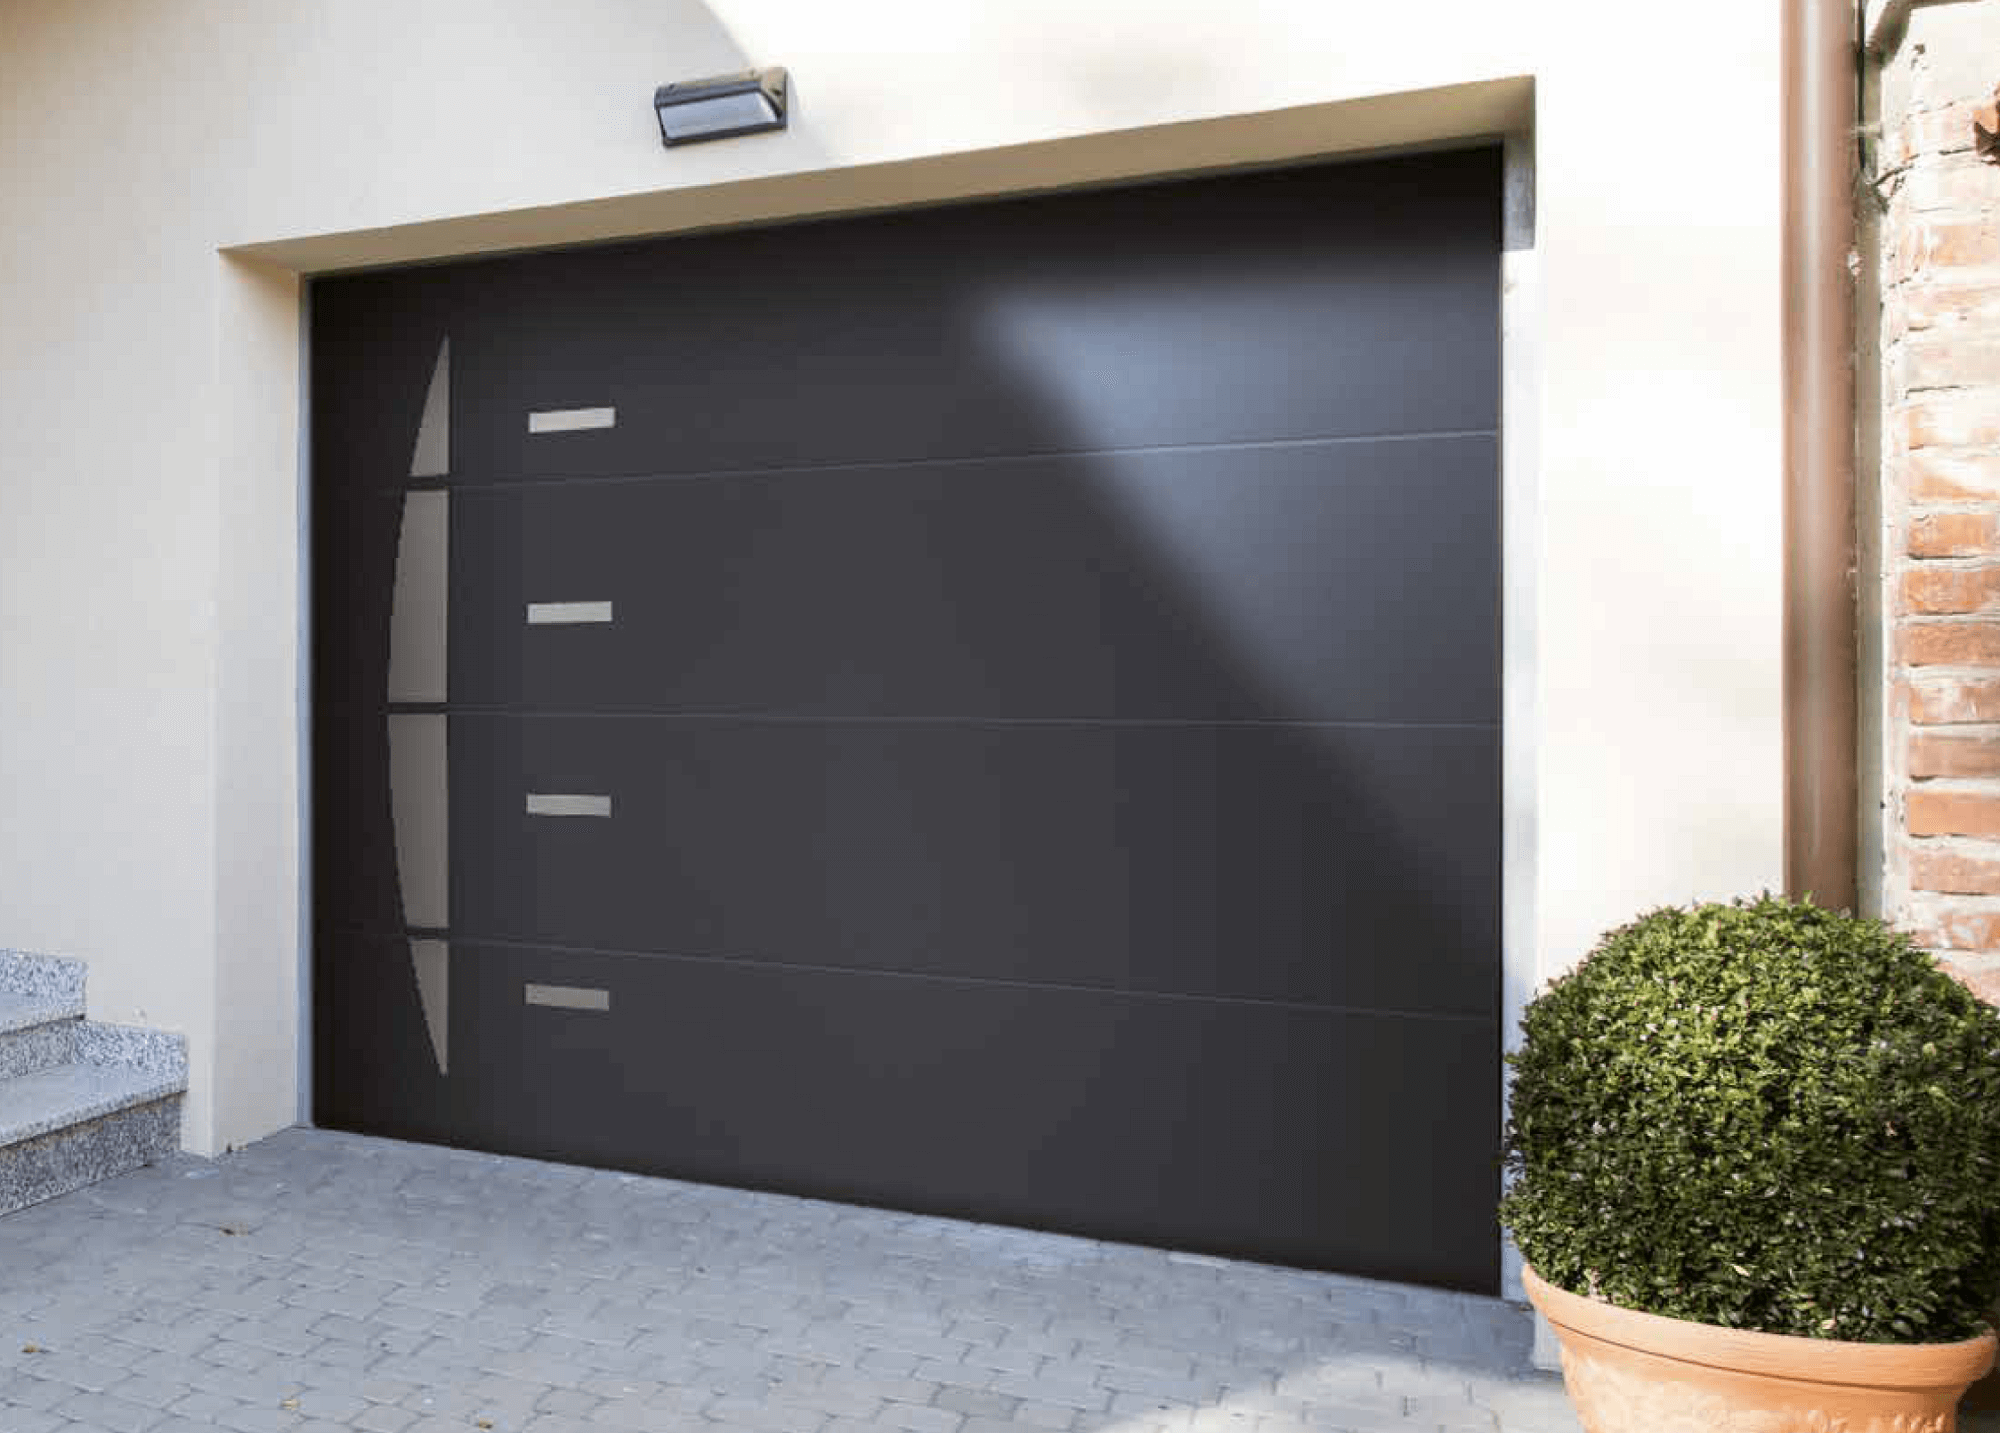 Porte de garage motoris e portes de garage sur mesure solabaie - Porte garage sectionnelle motorisee ...